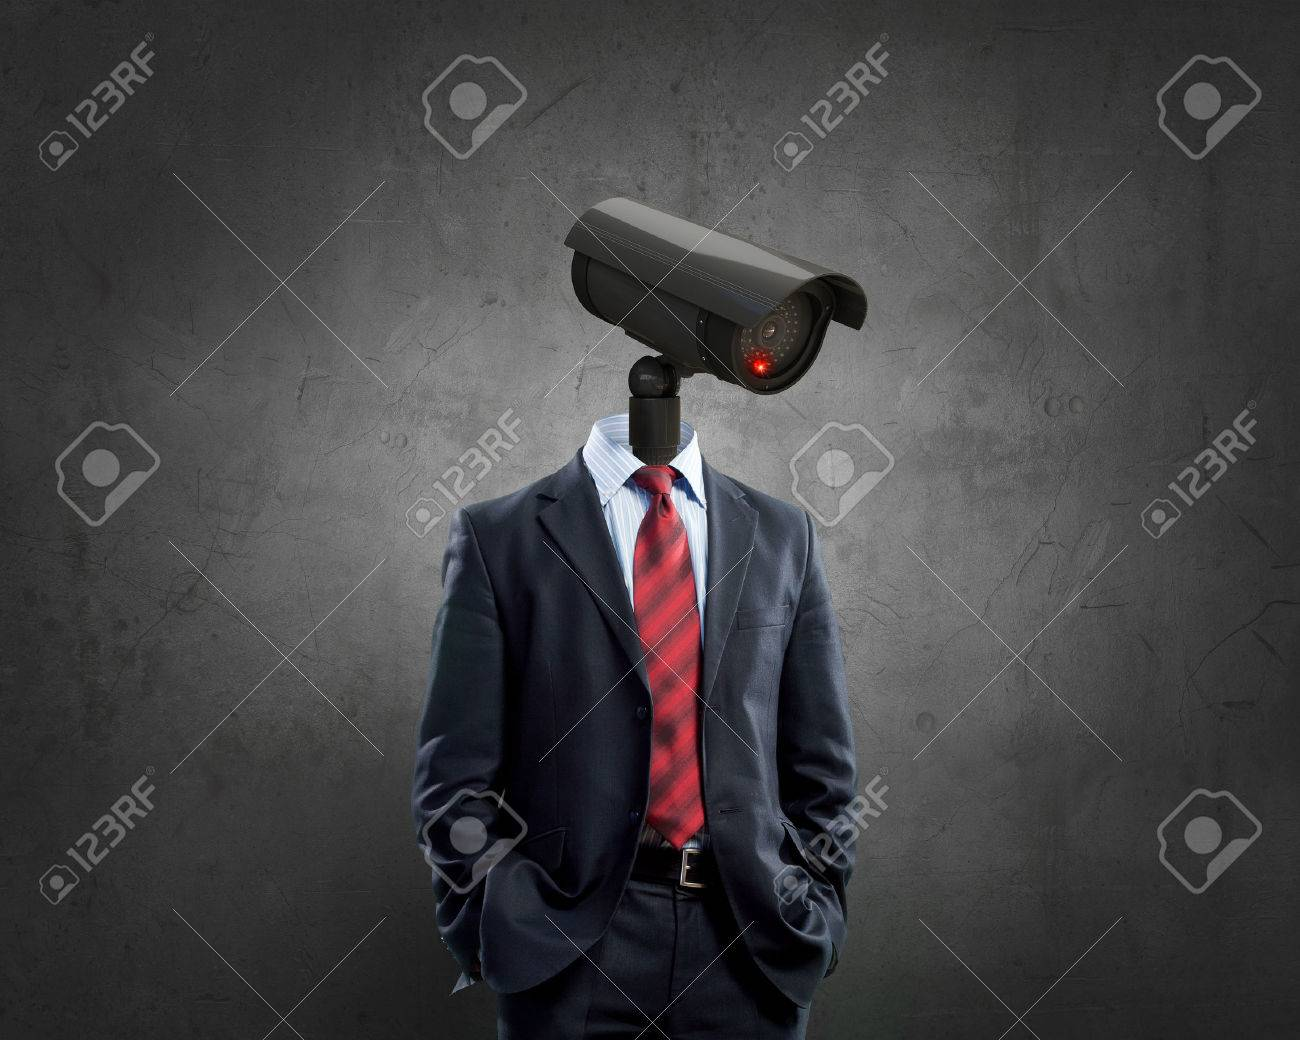 Portrait of camera headed man in suit as security concept Banque d'images - 51859675